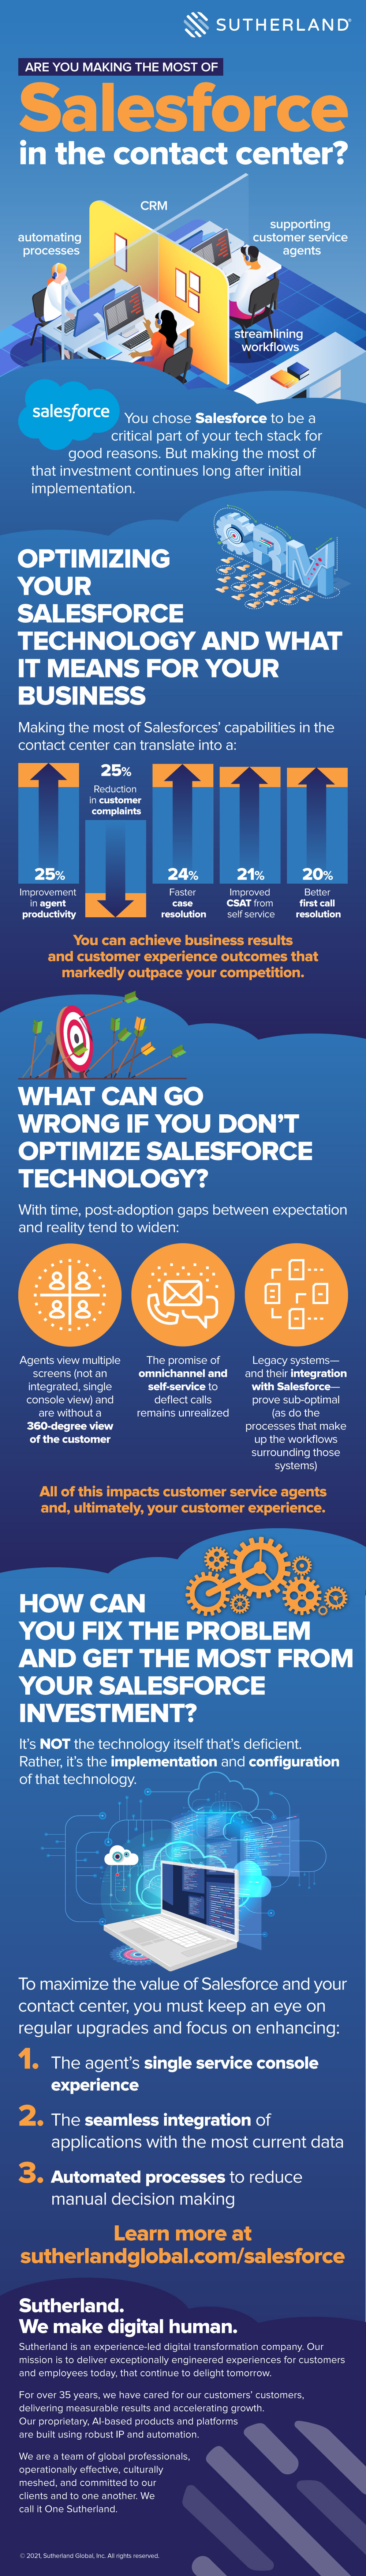 Are You Making the Most of Salesforce in the Contact Center?